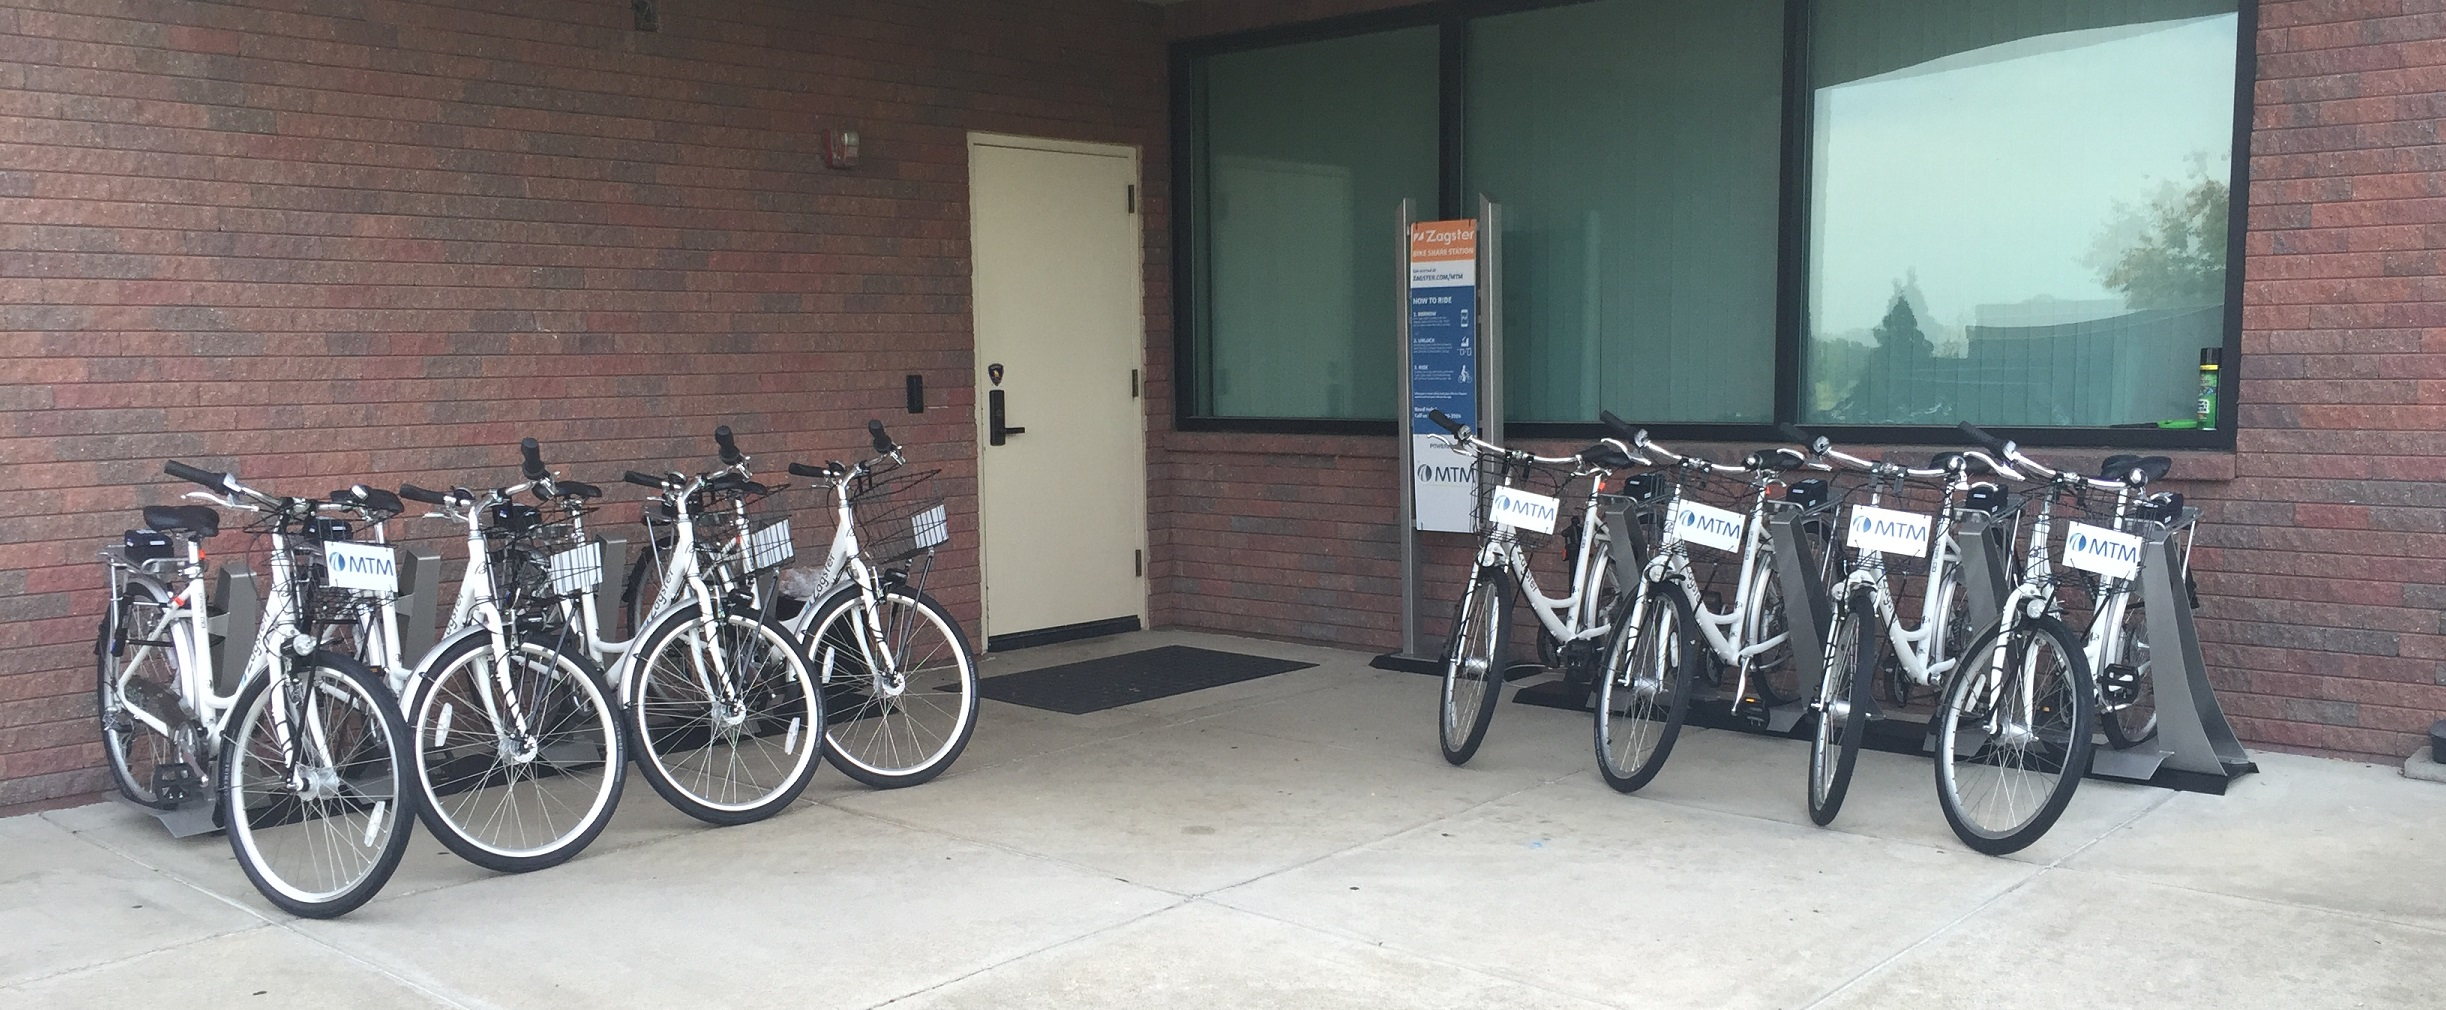 MTM Partners with Zagster for Bike Sharing - MTM, Inc.